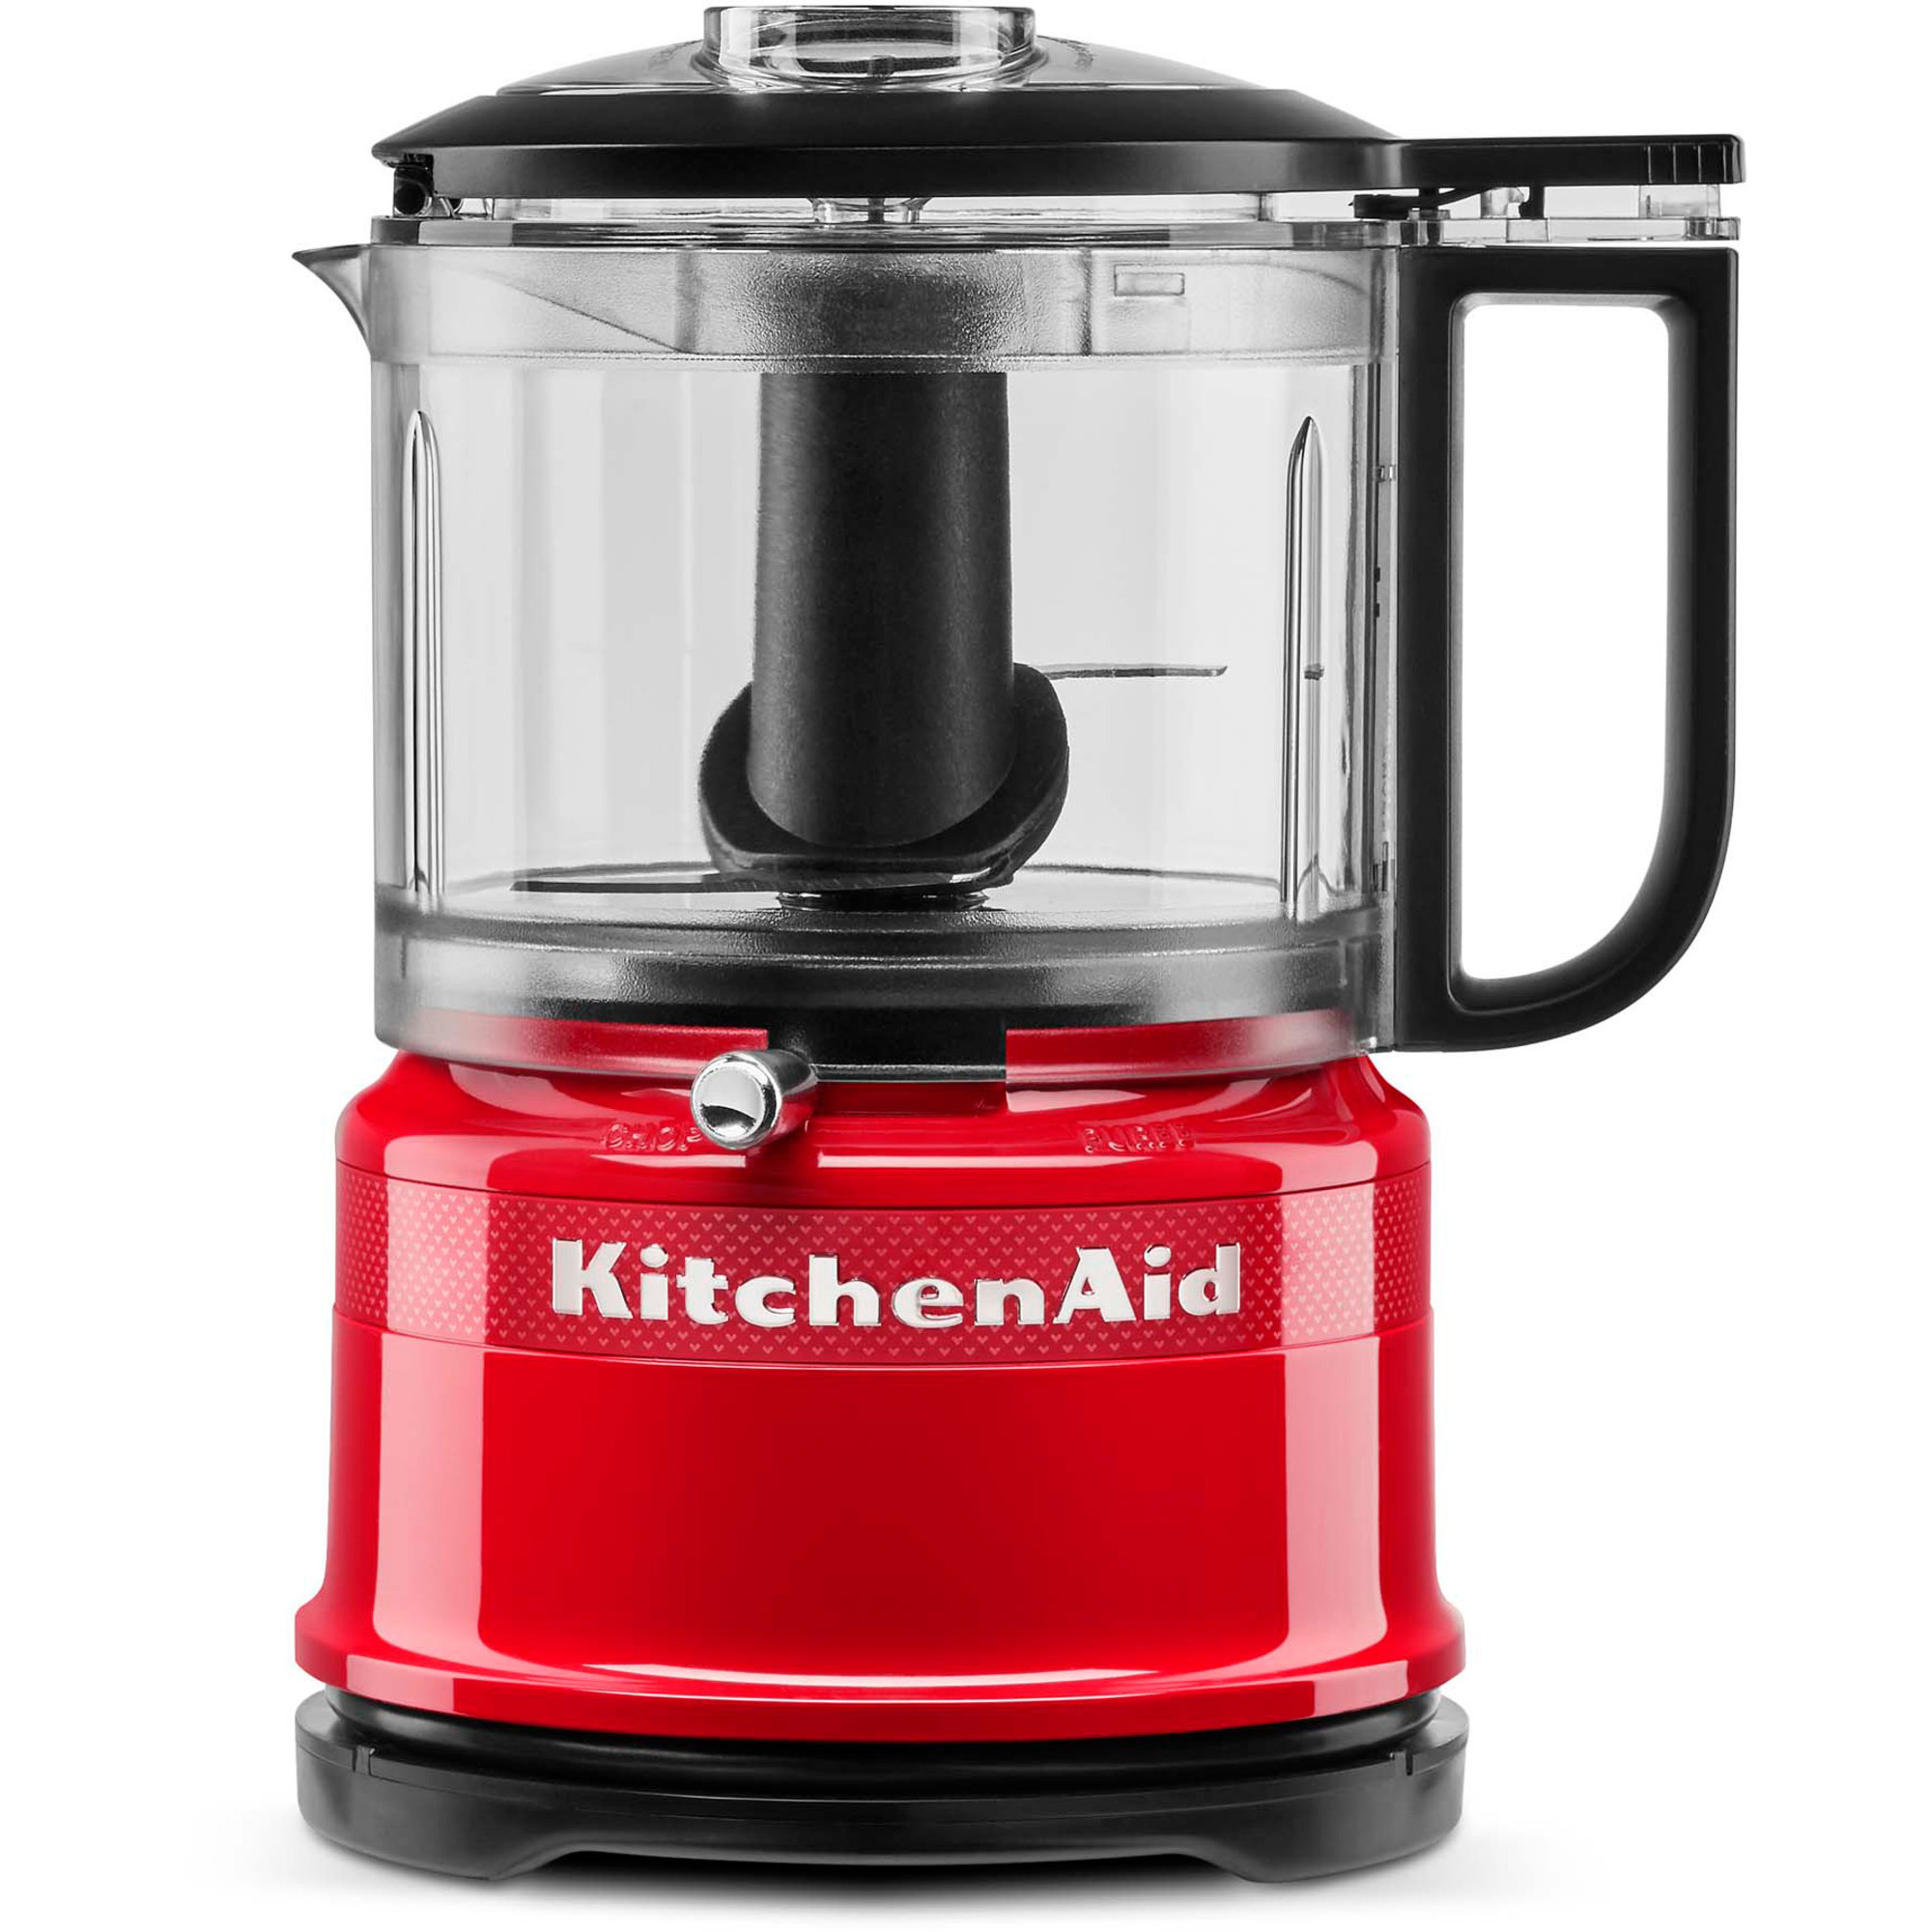 KitchenAid Mini Matberedare 100 Year Limited Edition – Queen of Hearts Collection